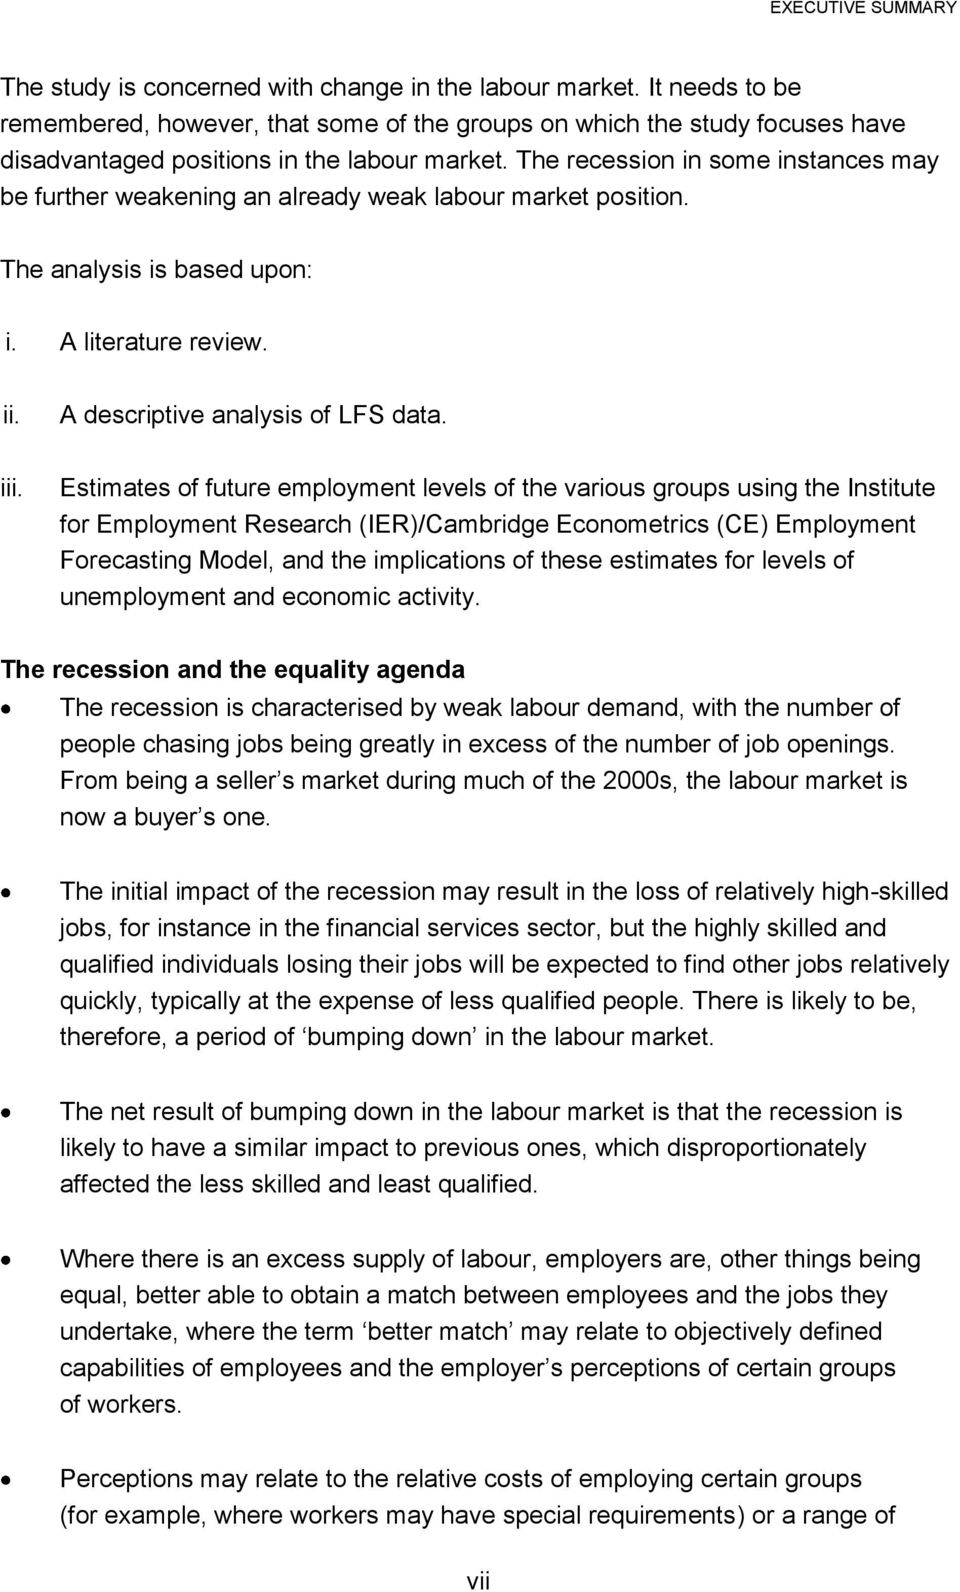 The recession in some instances may be further weakening an already weak labour market position. The analysis is based upon: i. A literature review. ii. A descriptive analysis of LFS data. iii.